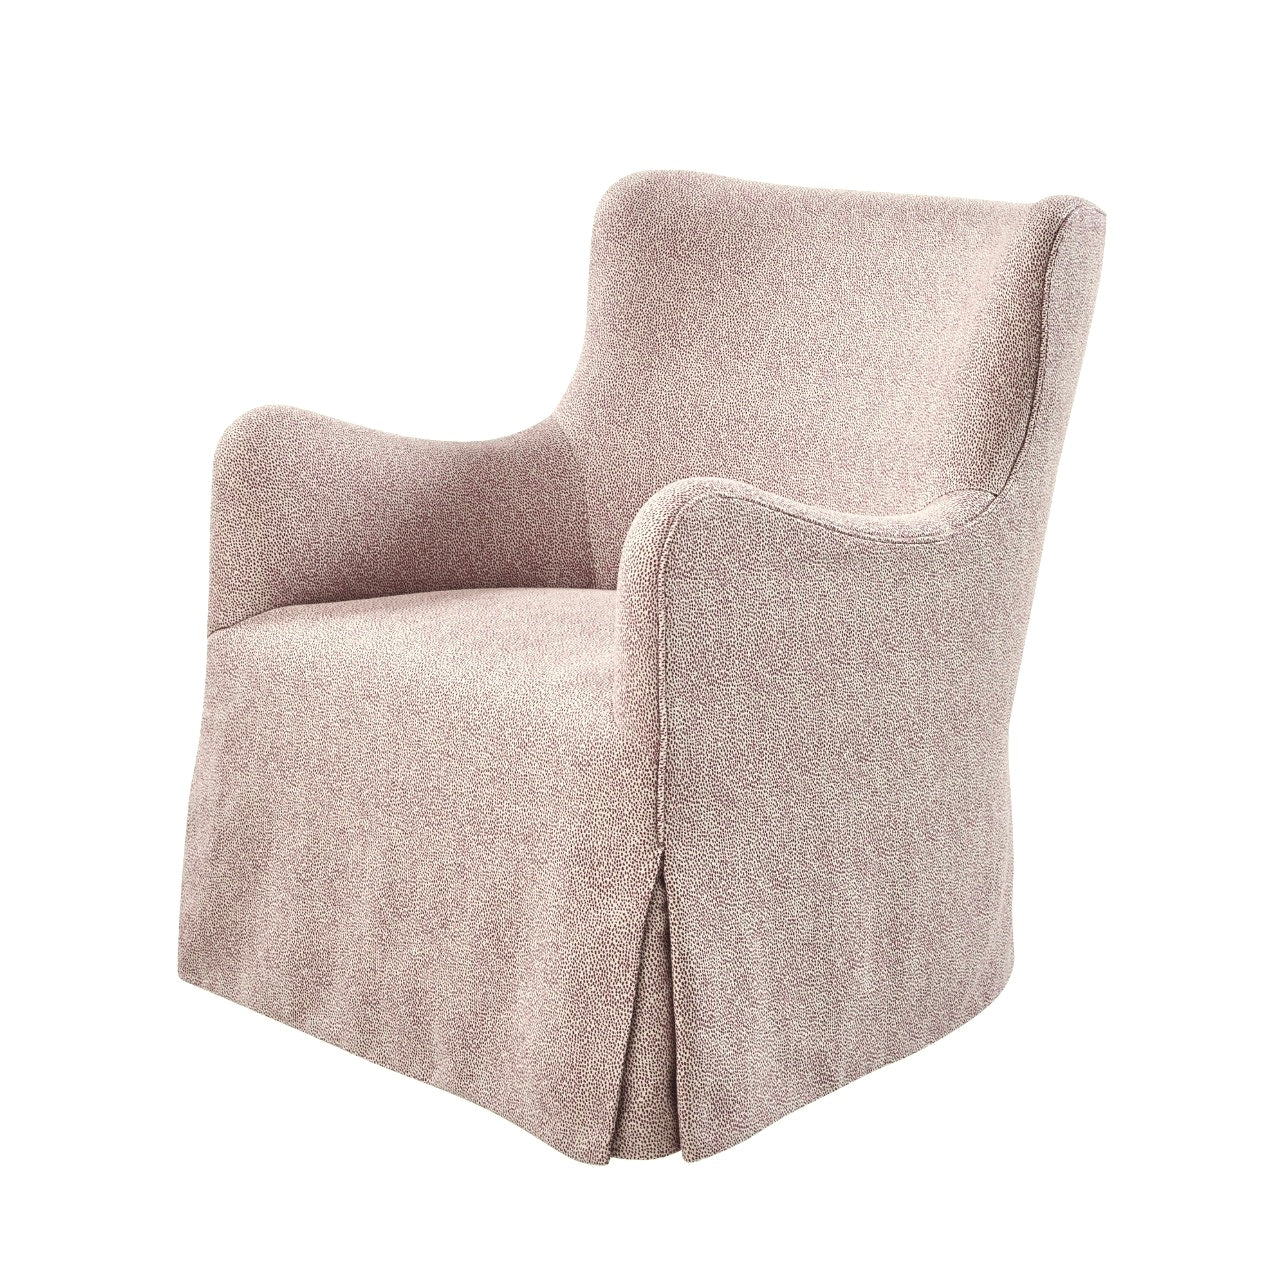 Lee Industries 1521-01 Chair